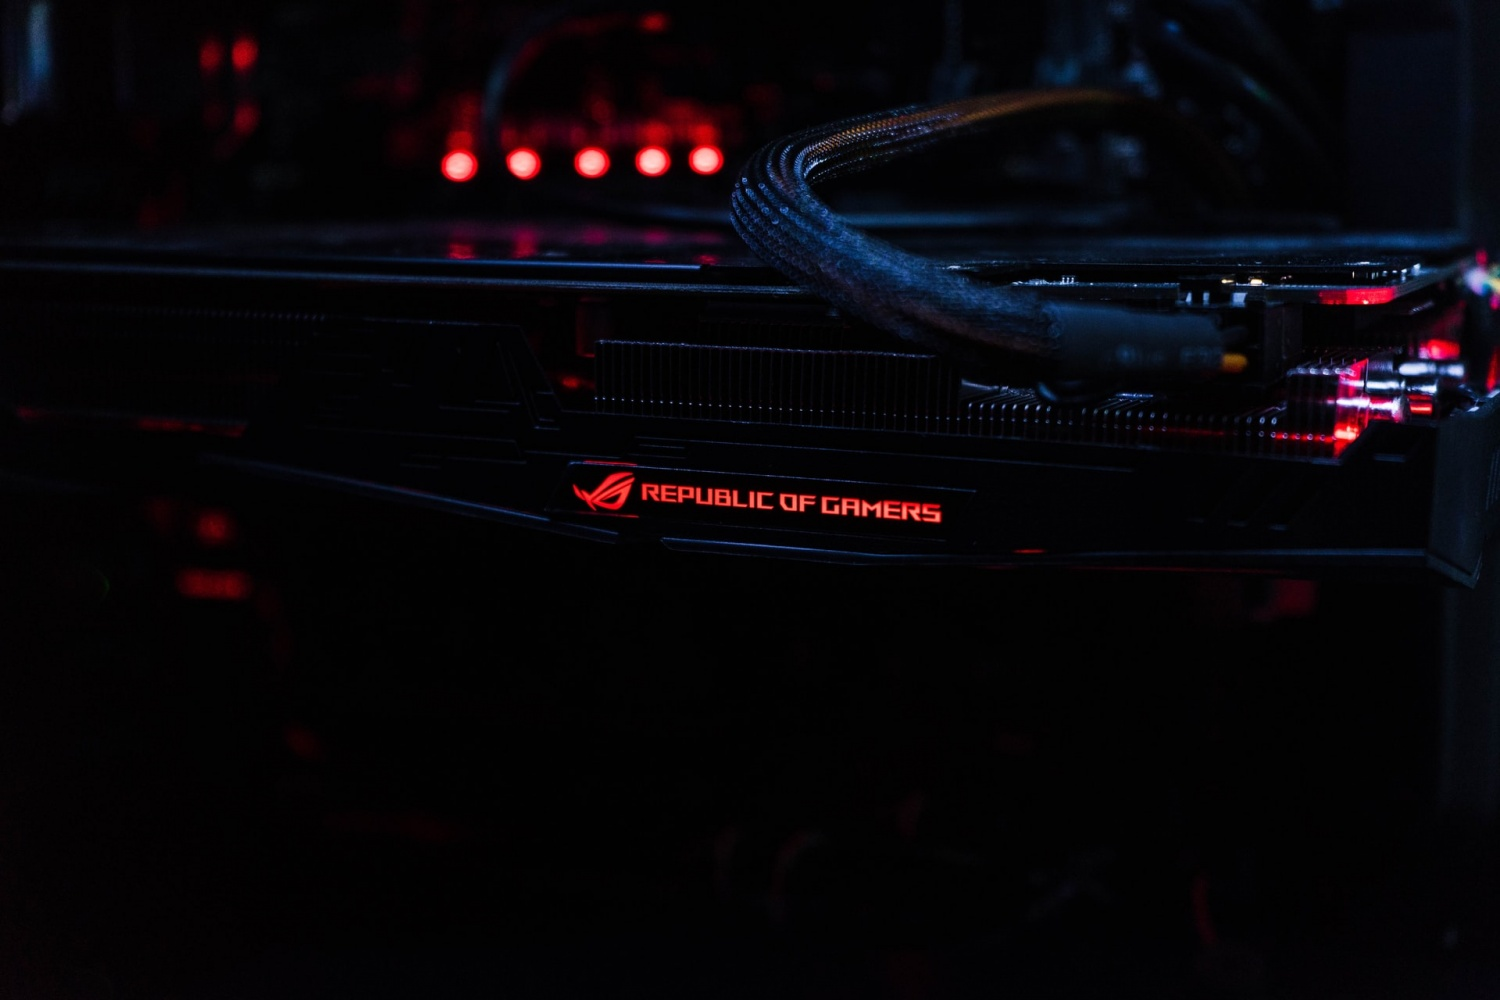 Asus ROG Strix G15 Reviews: Battery Life, Design, Power Don't Disappoint, But Ports and Extras Are 'Weak'